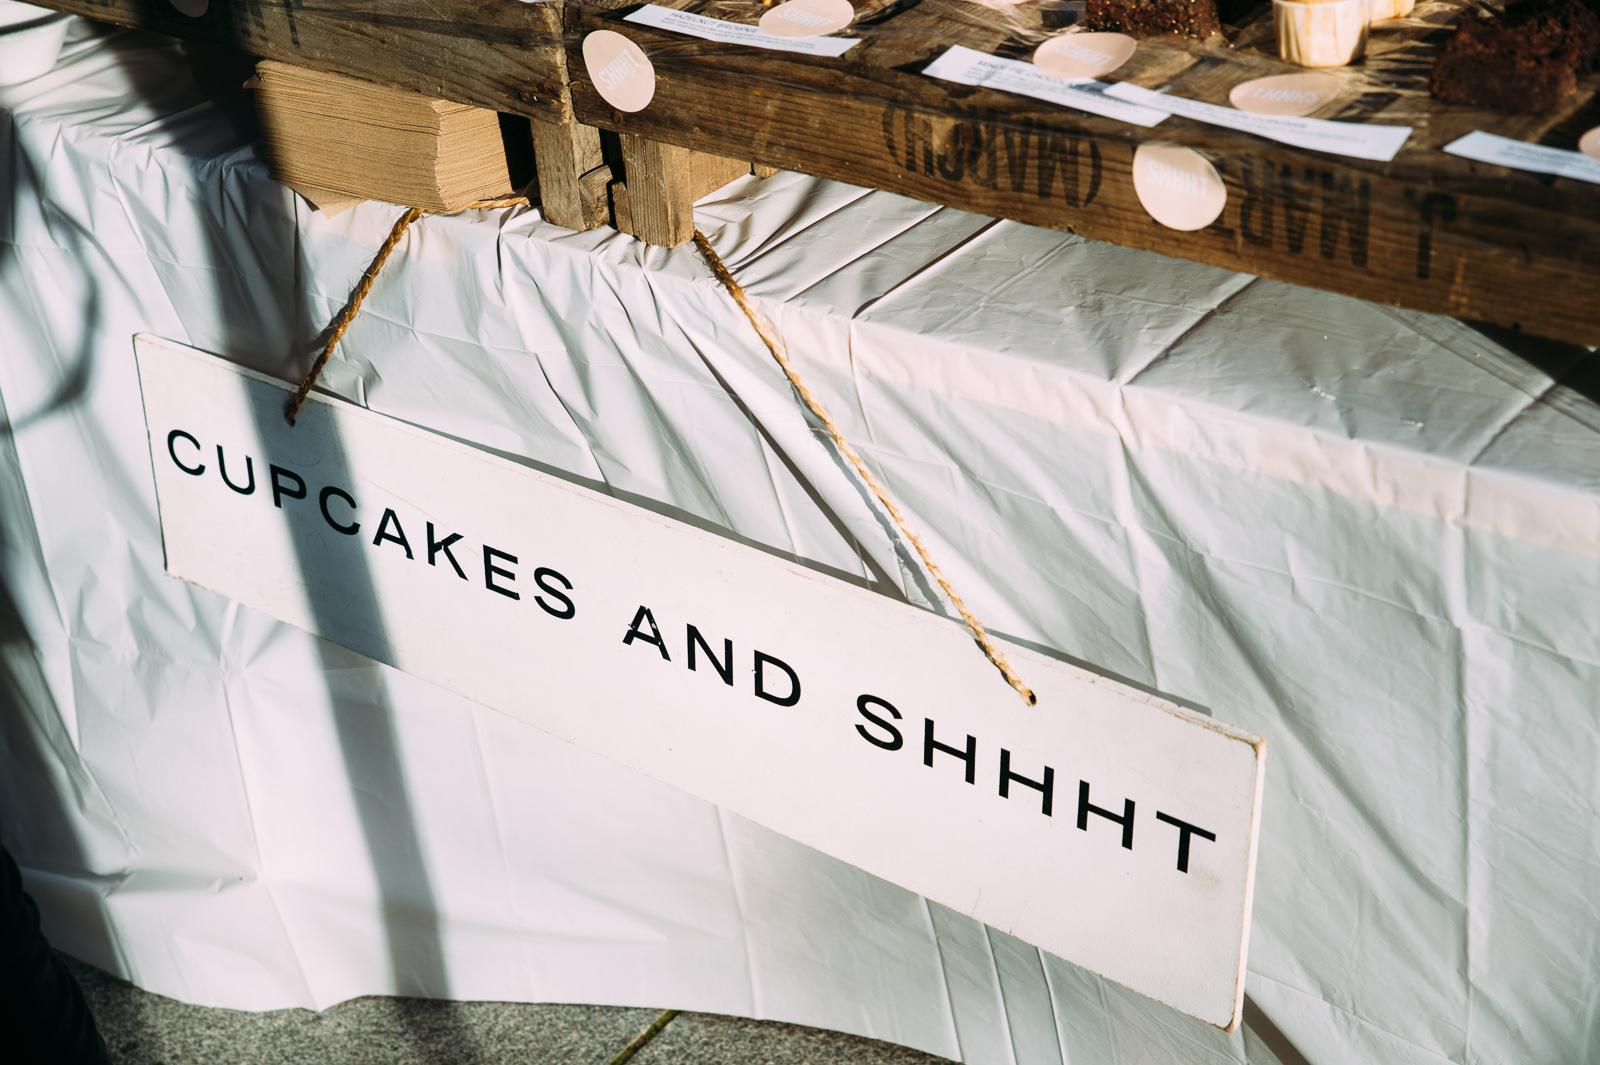 cupcakes and shhht stall